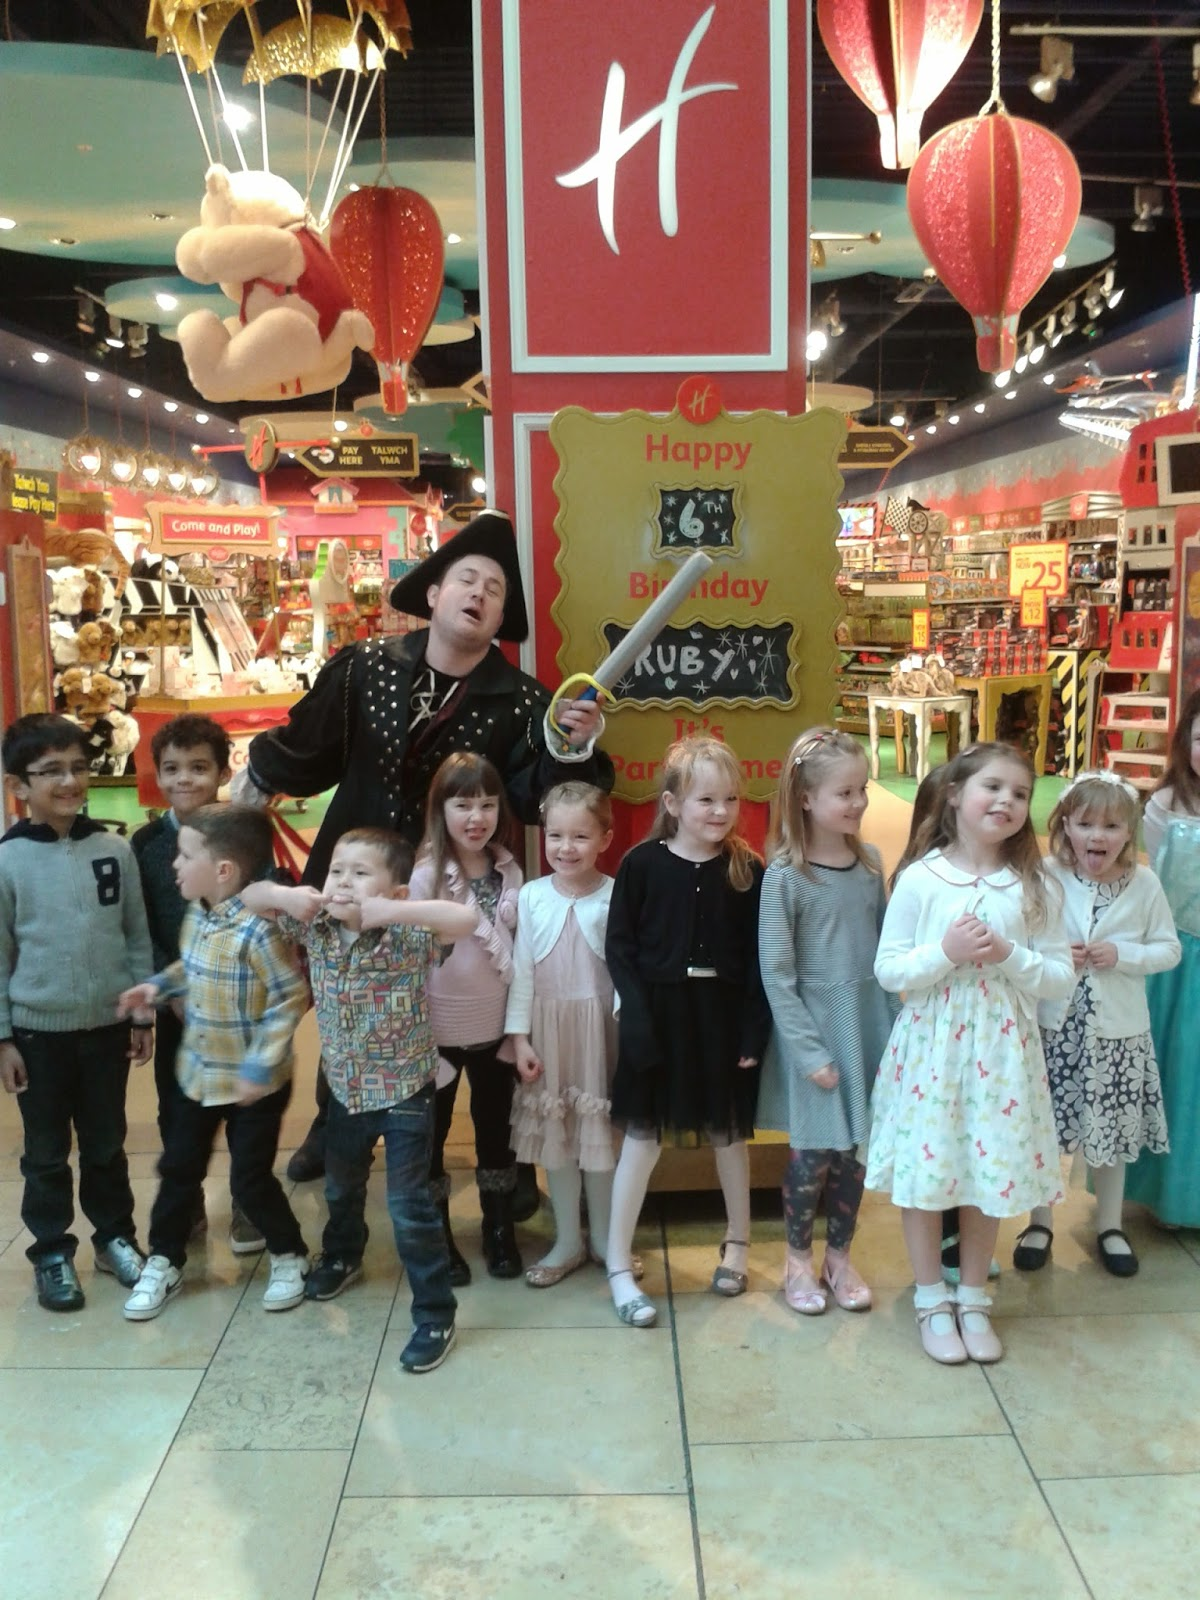 The party goers about to go in to the Pirate & Princesses Party at Hamleys Toystore Cardiff